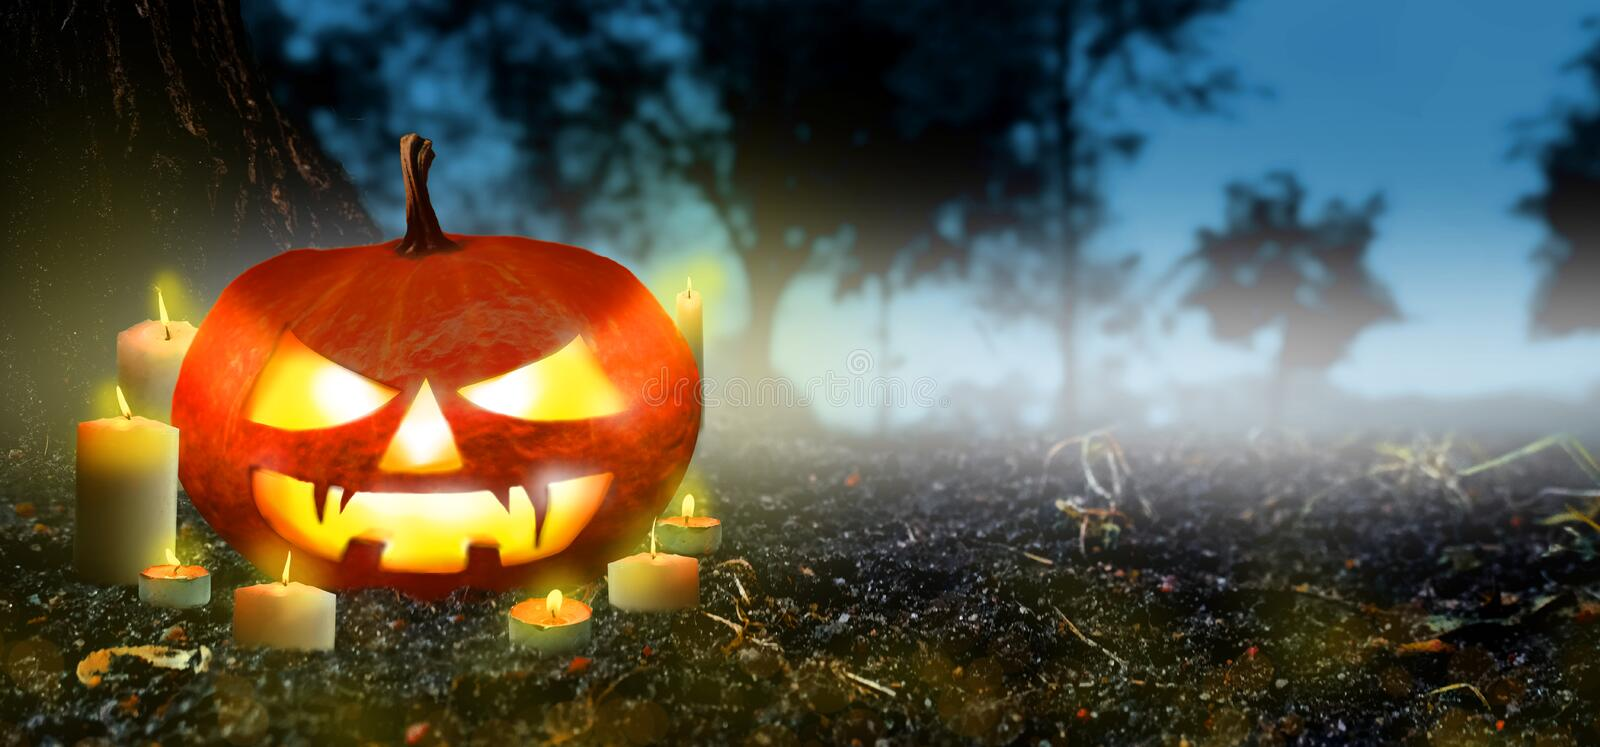 Jack O Lanterns pumpkin Glowing with candles In The Spooky Night forest - Banner. Halloween Scene background. Copyspace for text stock photography